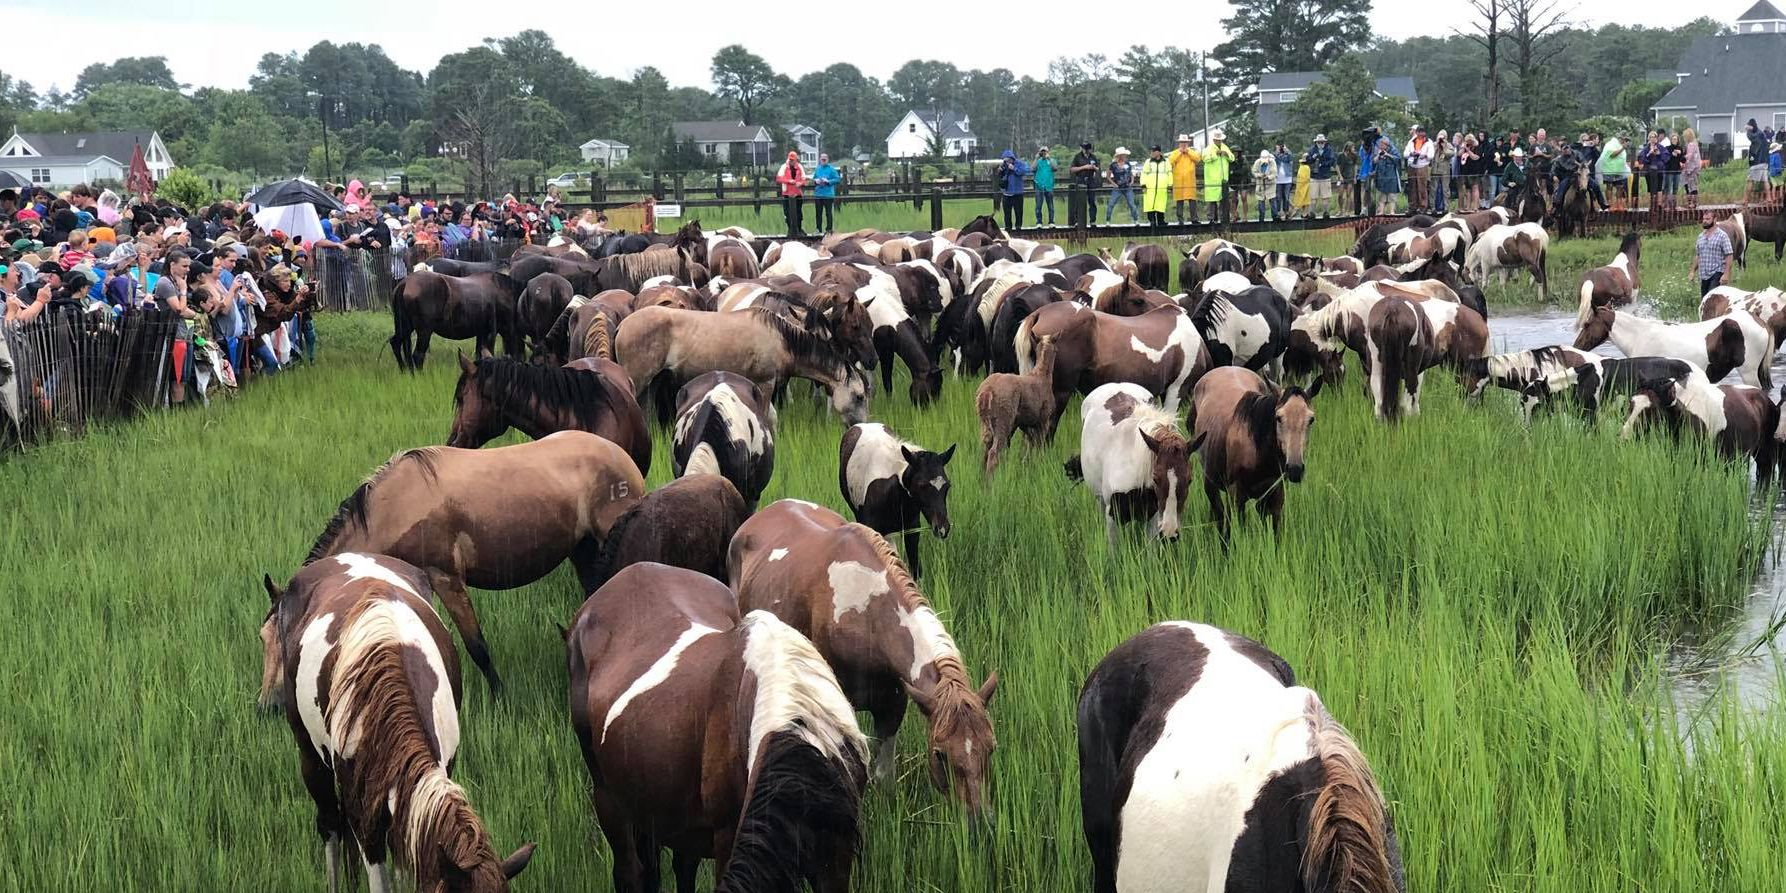 Virginia 'swamp cancer' prompts concern for NC wild horses